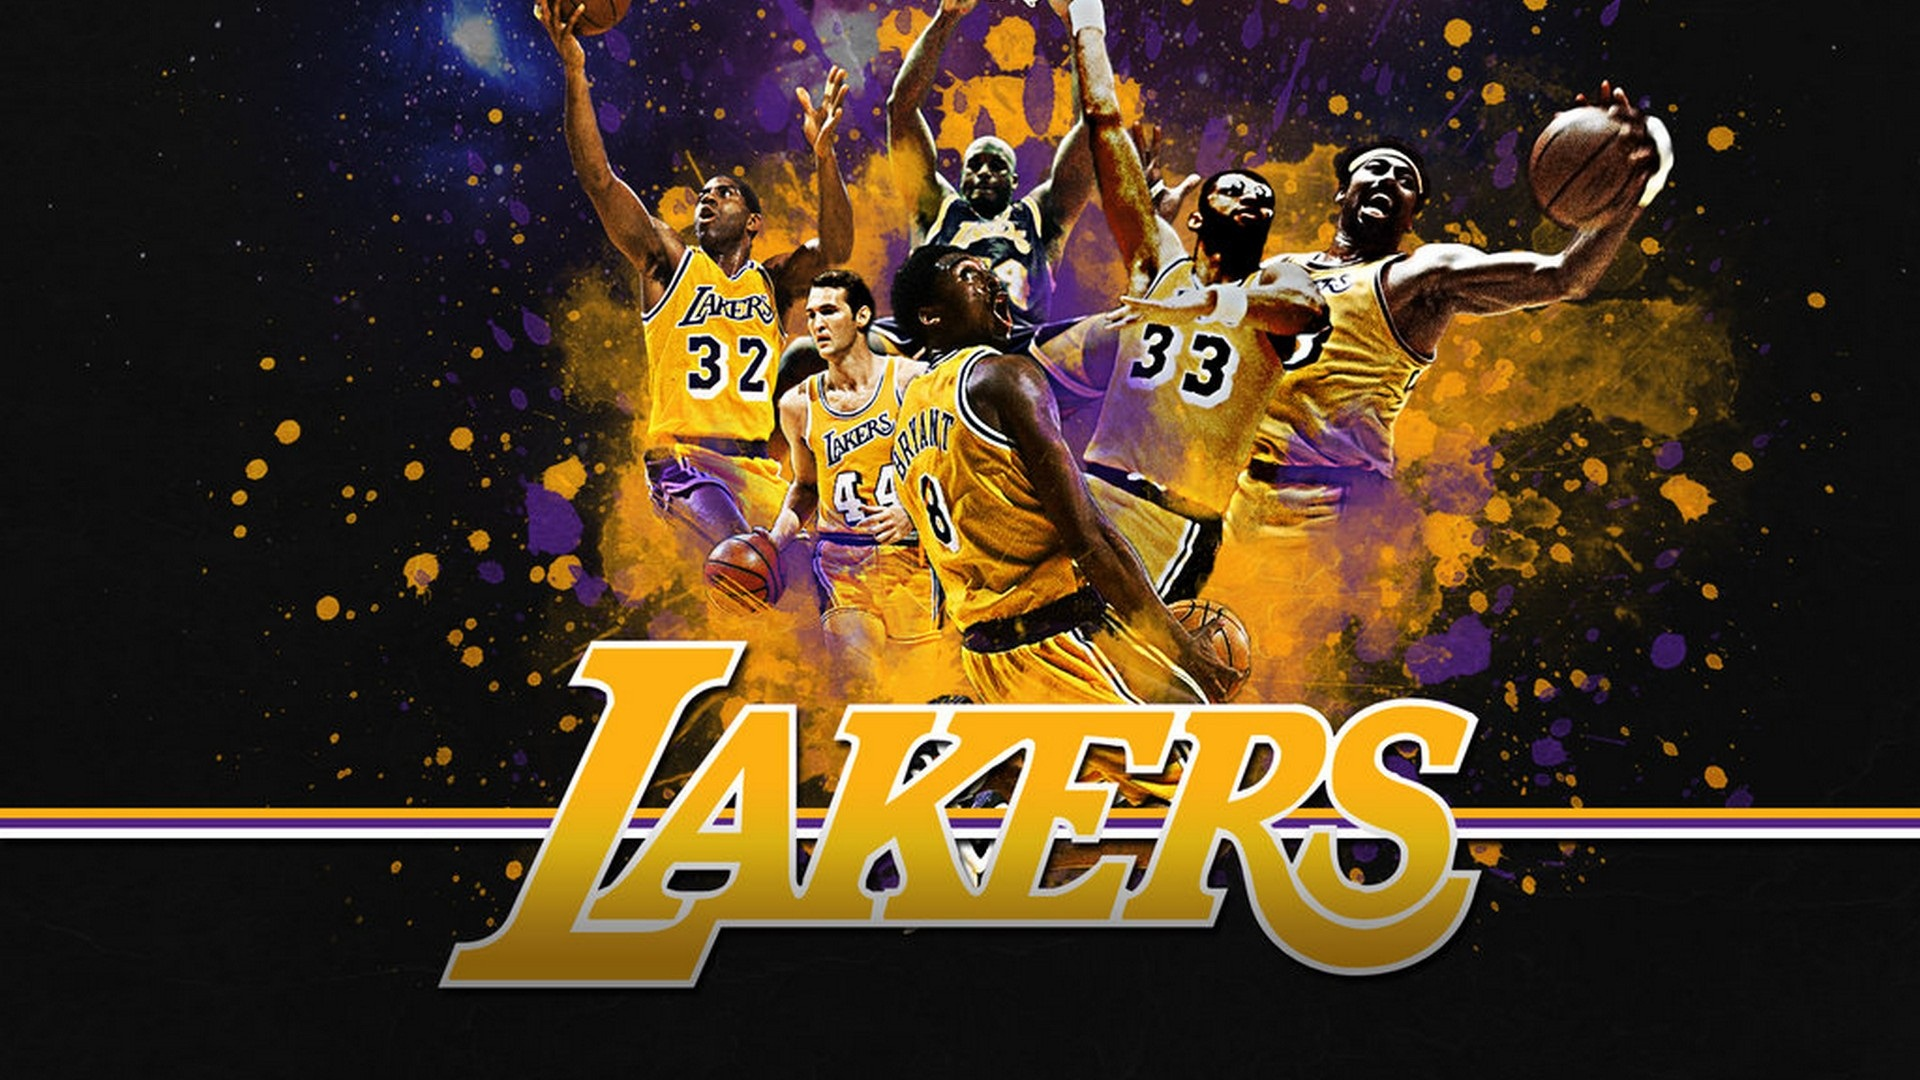 Hd Backgrounds Los Angeles Lakers With Image Dimensions Background Los Angeles Lakers 1920x1080 Download Hd Wallpaper Wallpapertip